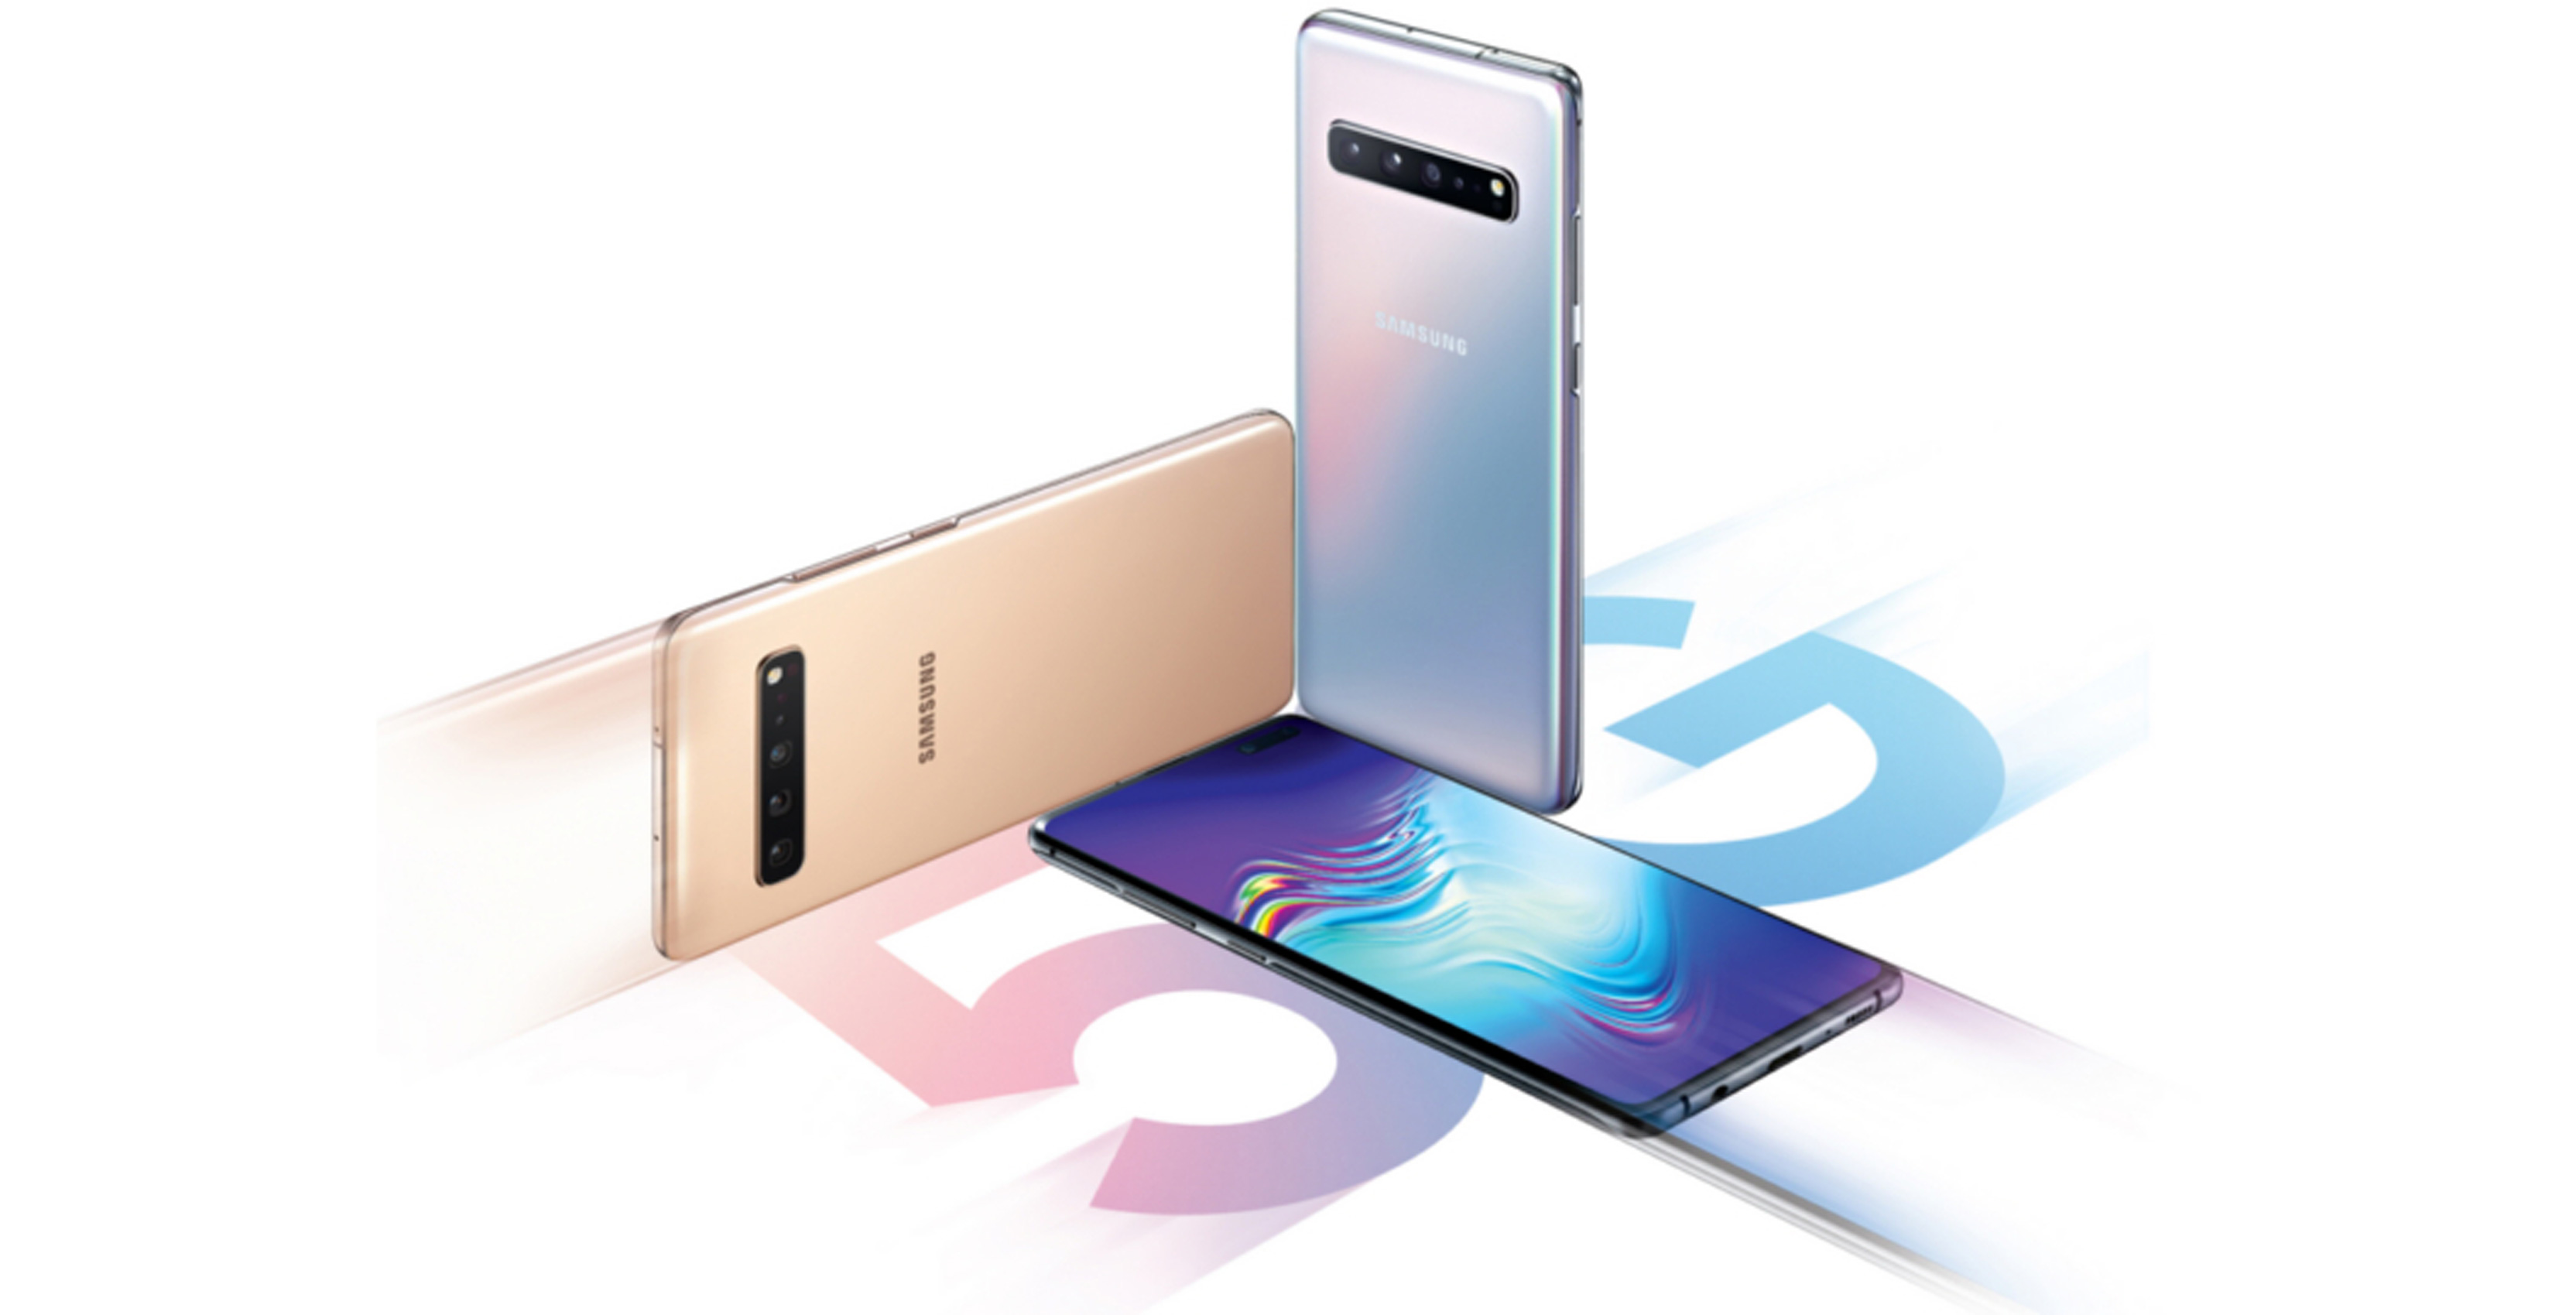 Samsung Galaxy S10 5G Release Date, Launch Colours Revealed